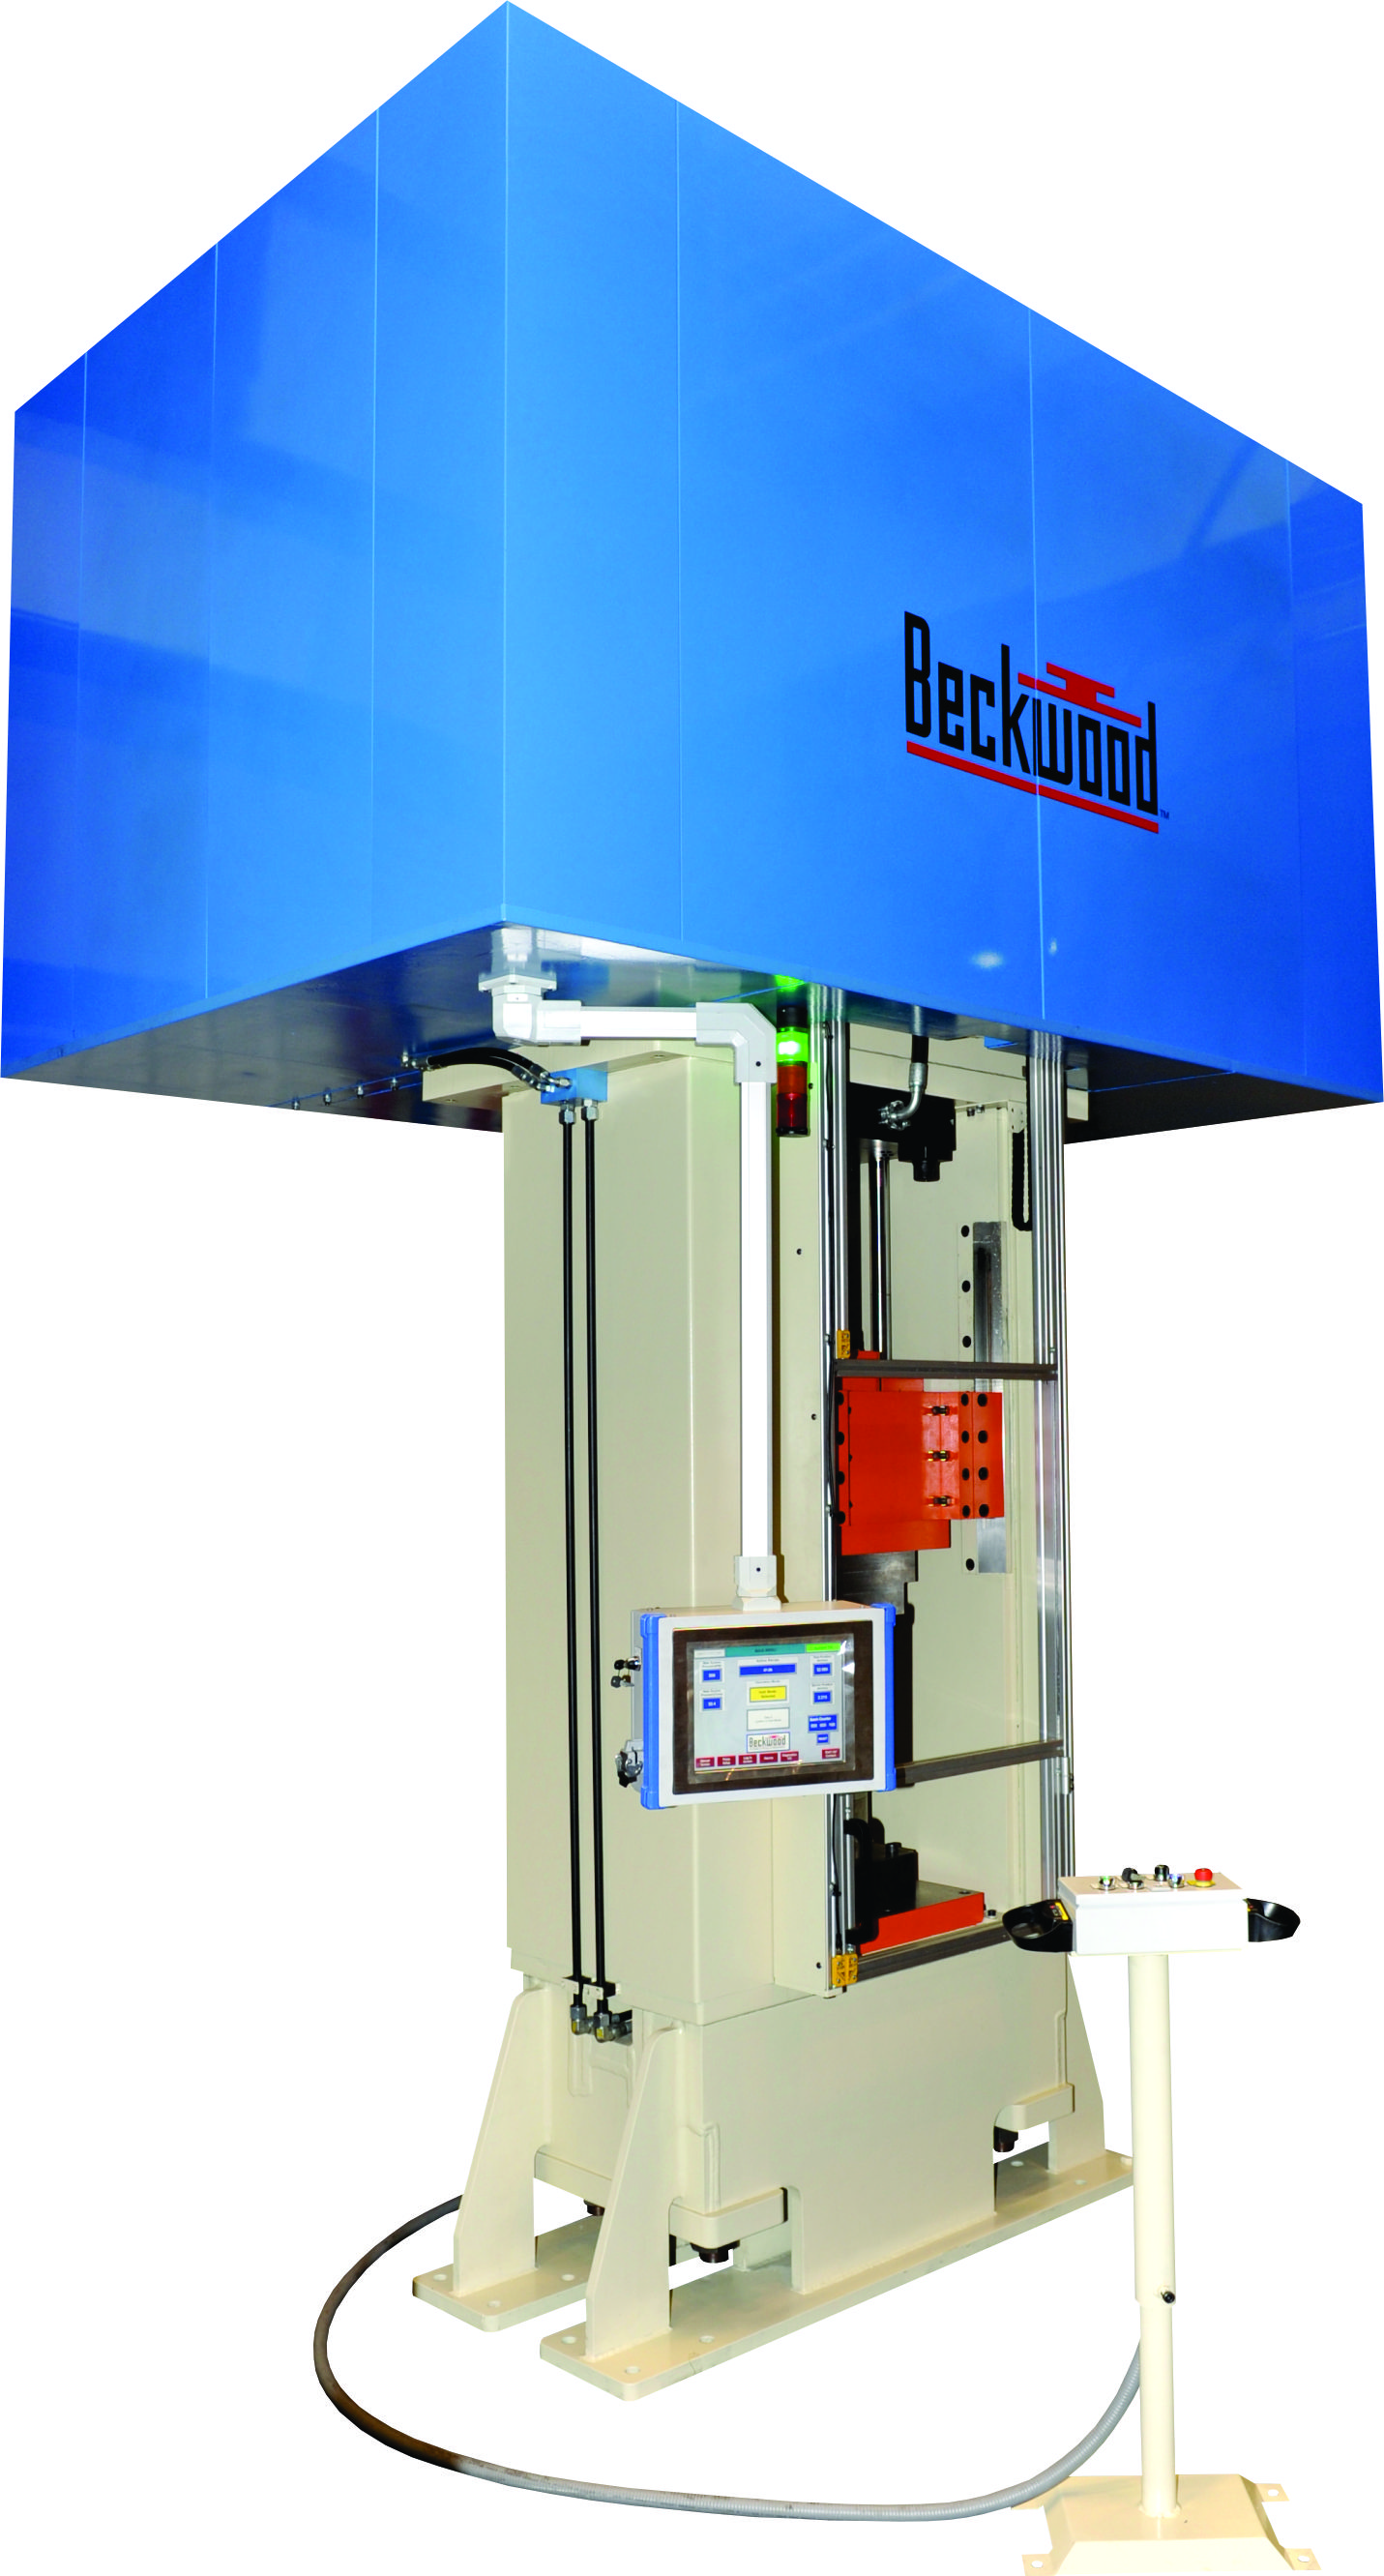 The ram on a hydraulic press built by Beckwood Press can use gib and post guidance or a different guidance method to account for the vast majority of potential customer applications.(Click on photo to enlarge it)